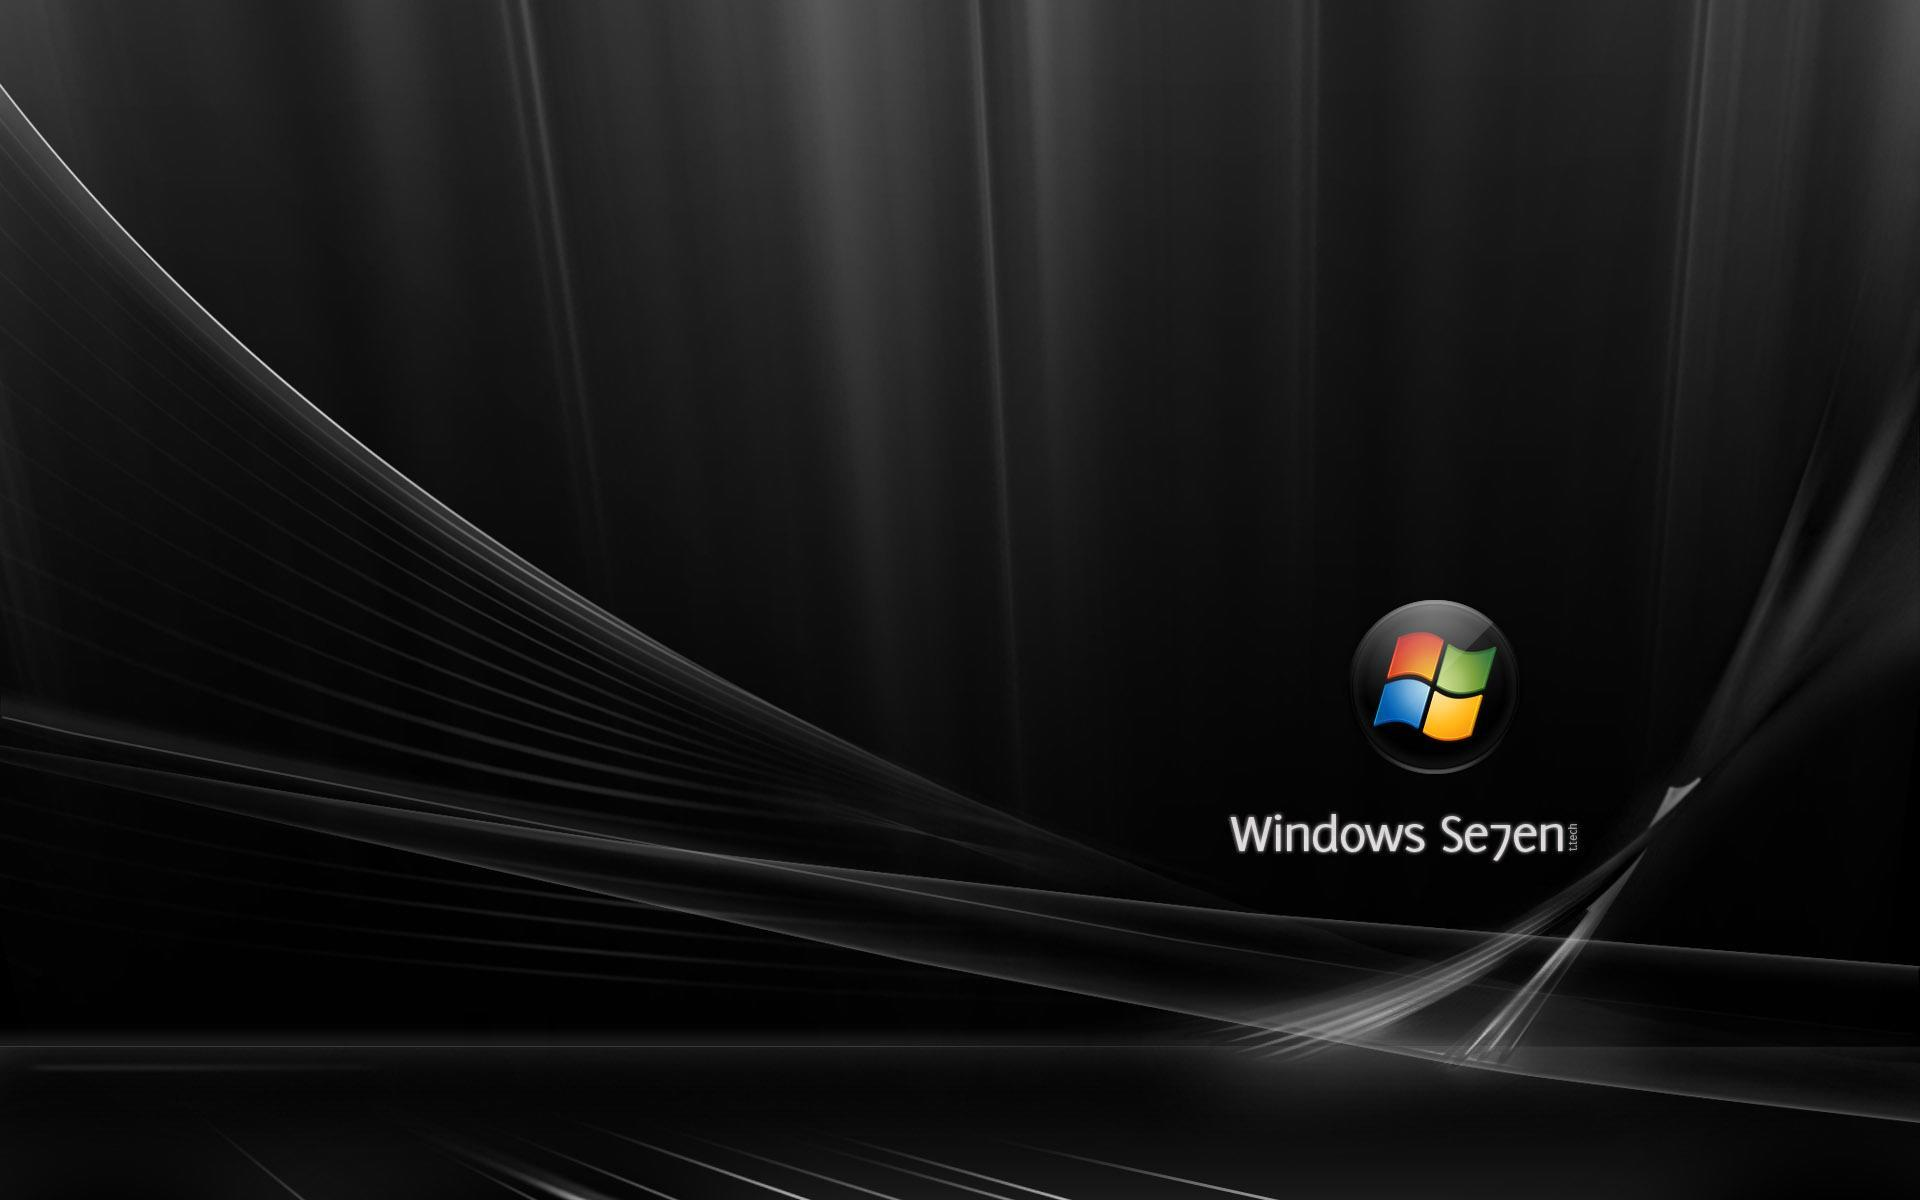 Hd wallpaper windows 7 - Windows7 Wallpapers Full Hd Wallpaper Search Page 2